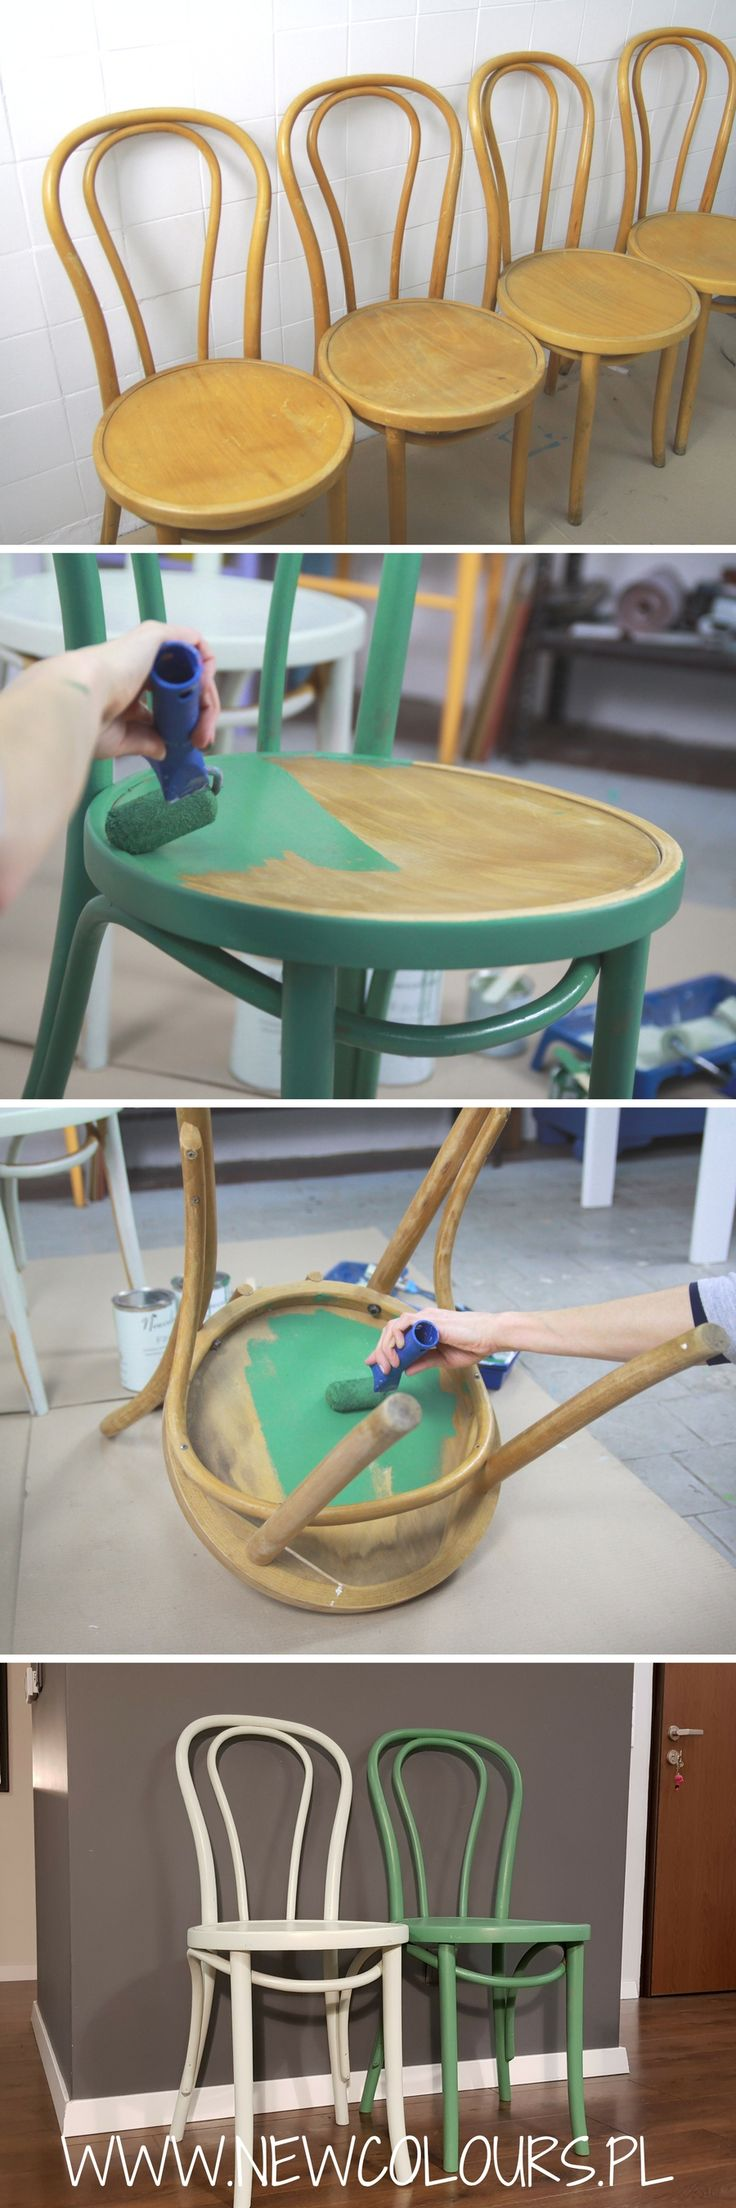 Malowanie starych krzeseł - farba Newcolours. Old chairs painted with Newcolours paints.